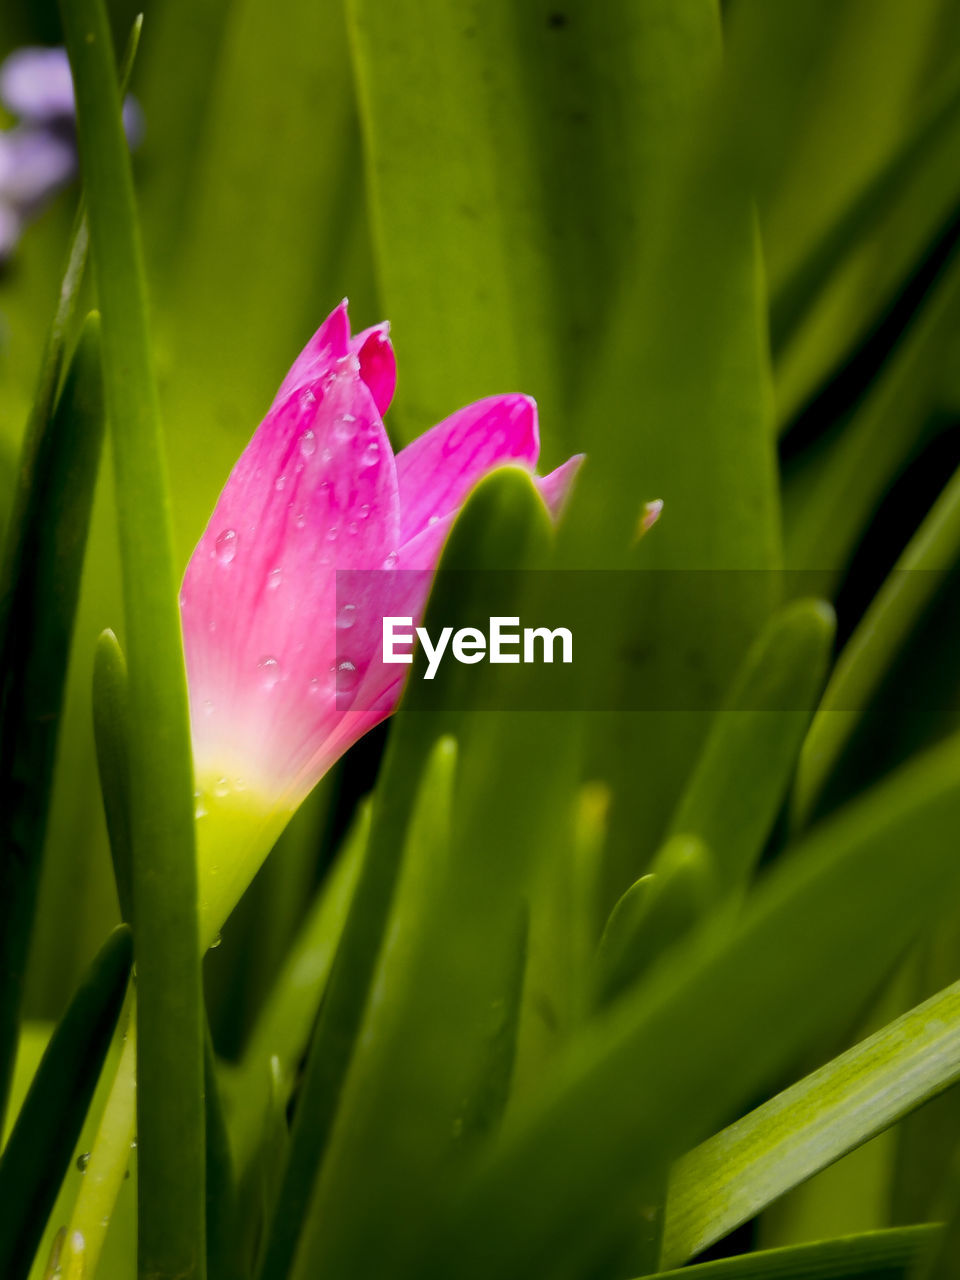 flower, growth, petal, beauty in nature, nature, drop, freshness, green color, fragility, plant, pink color, leaf, flower head, wet, close-up, water, no people, raindrop, outdoors, day, blooming